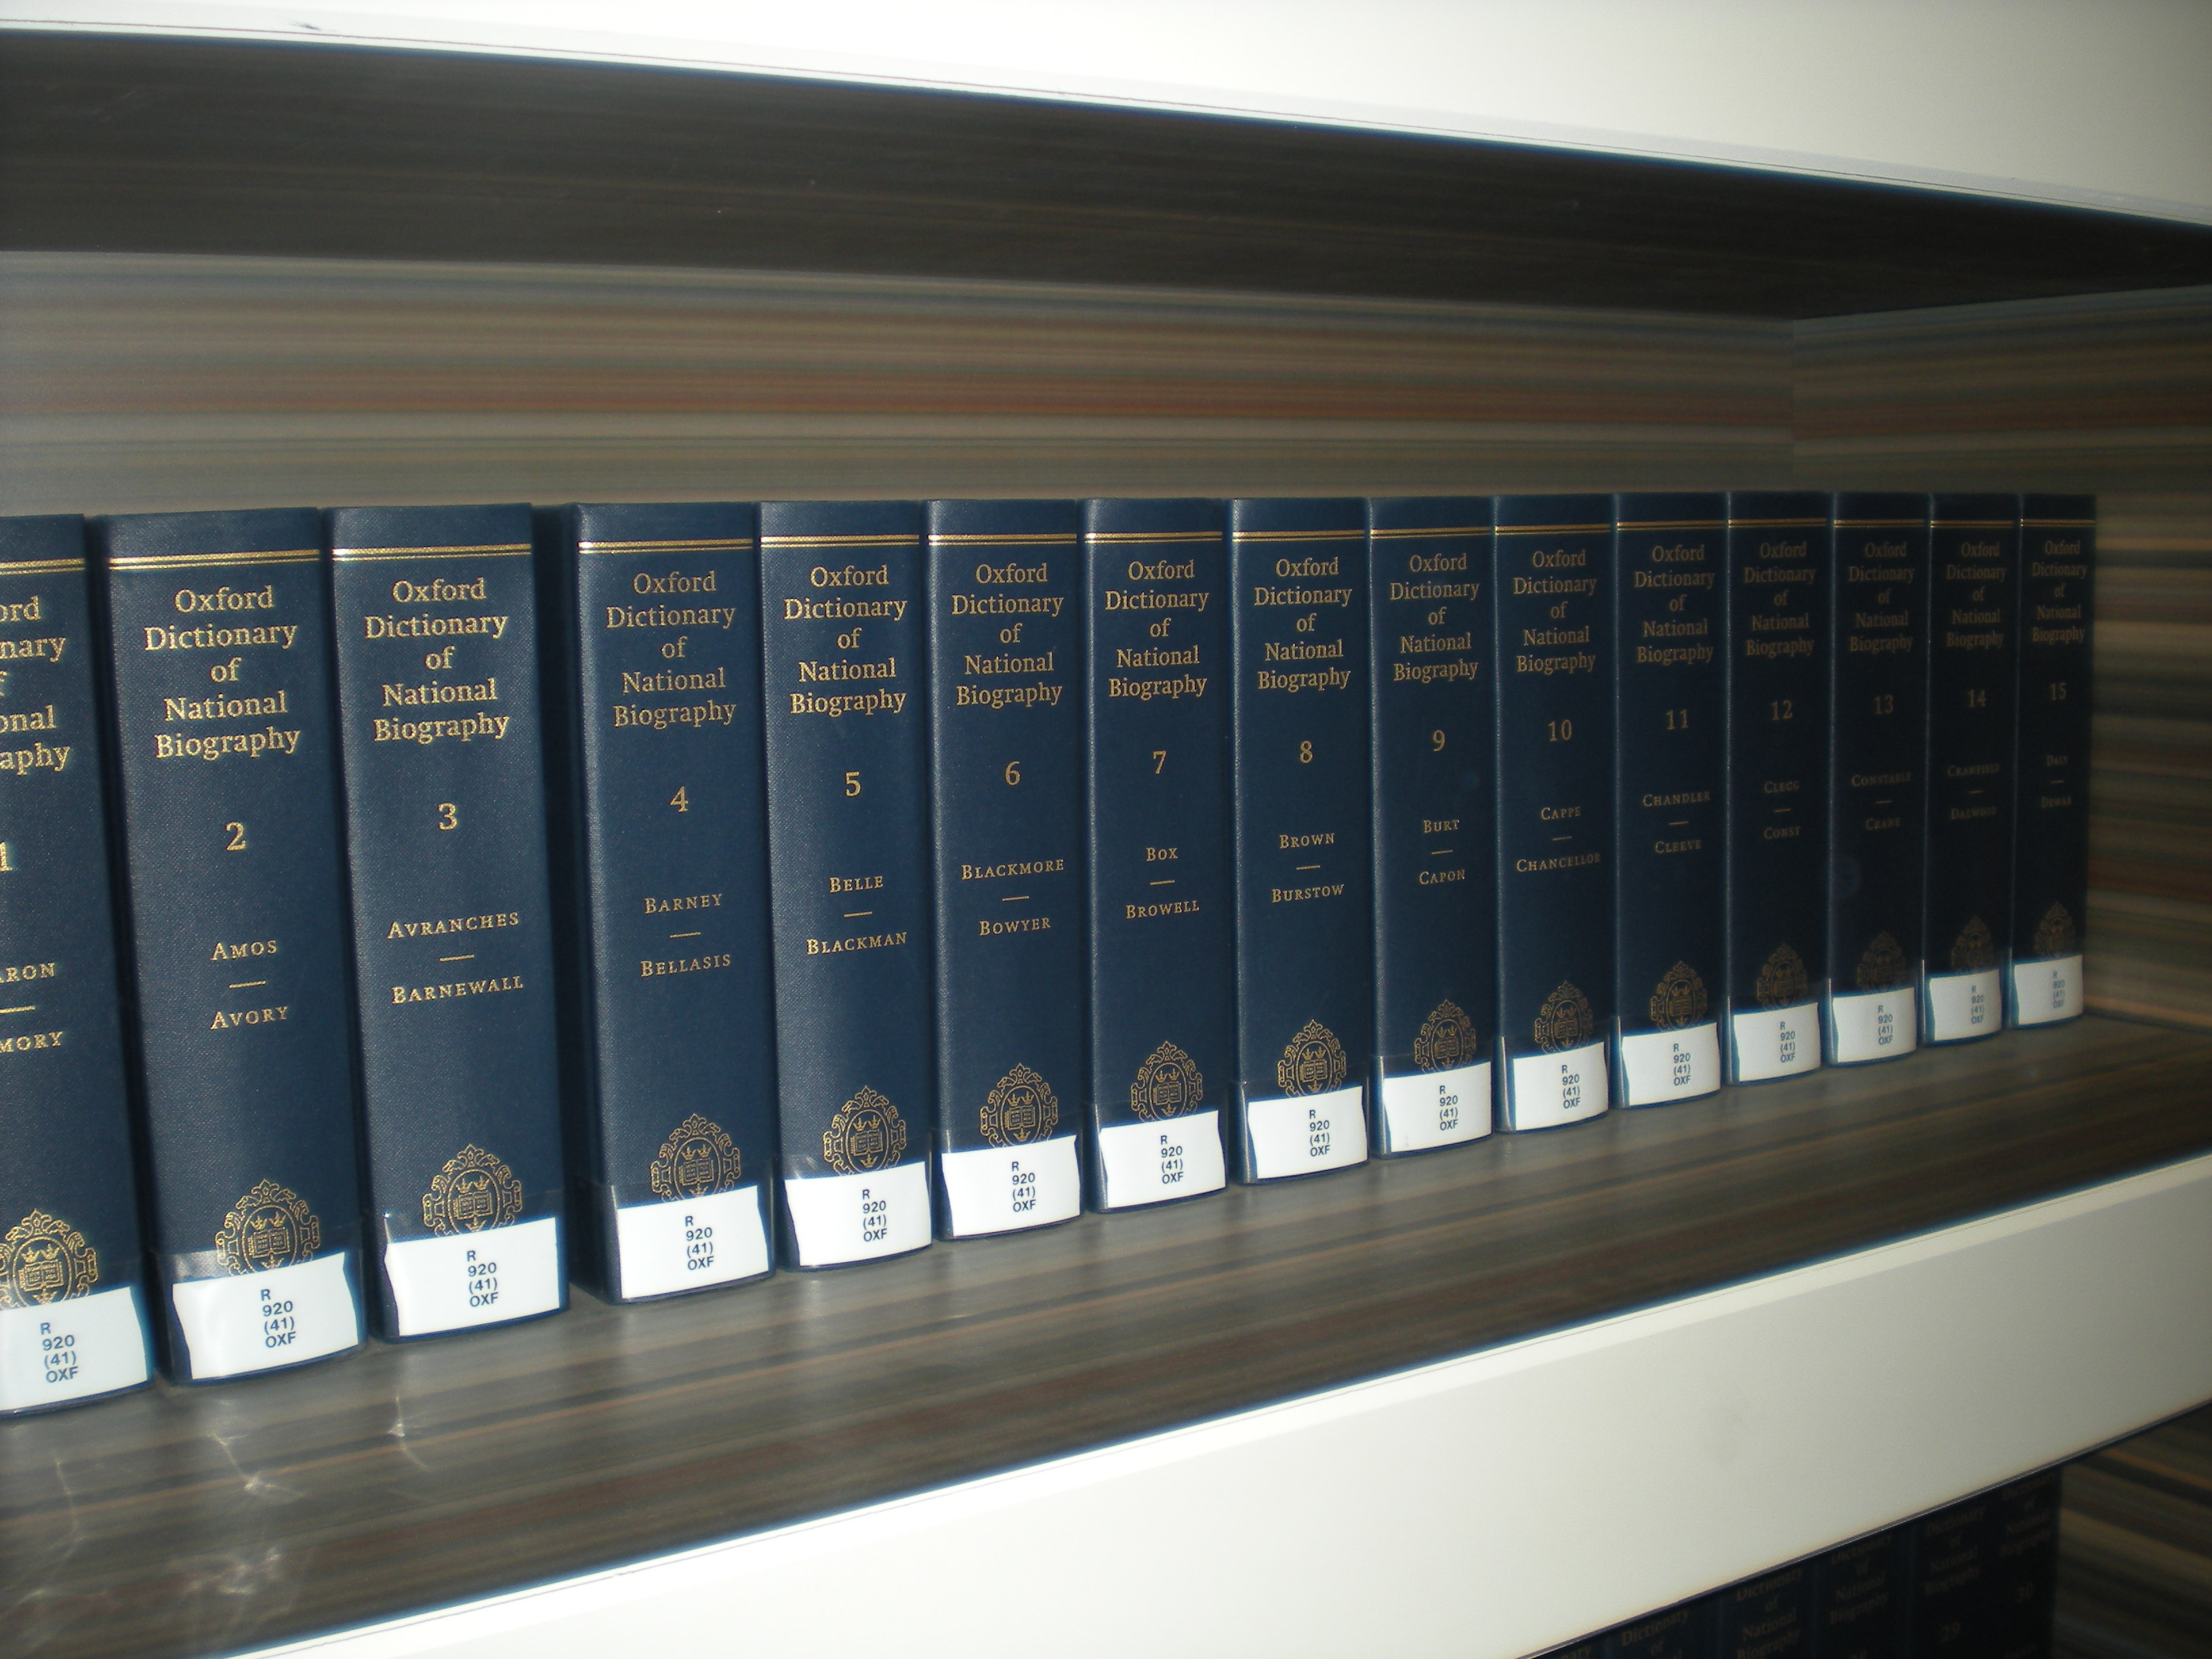 Oxford Dictionary of National Biography volumes